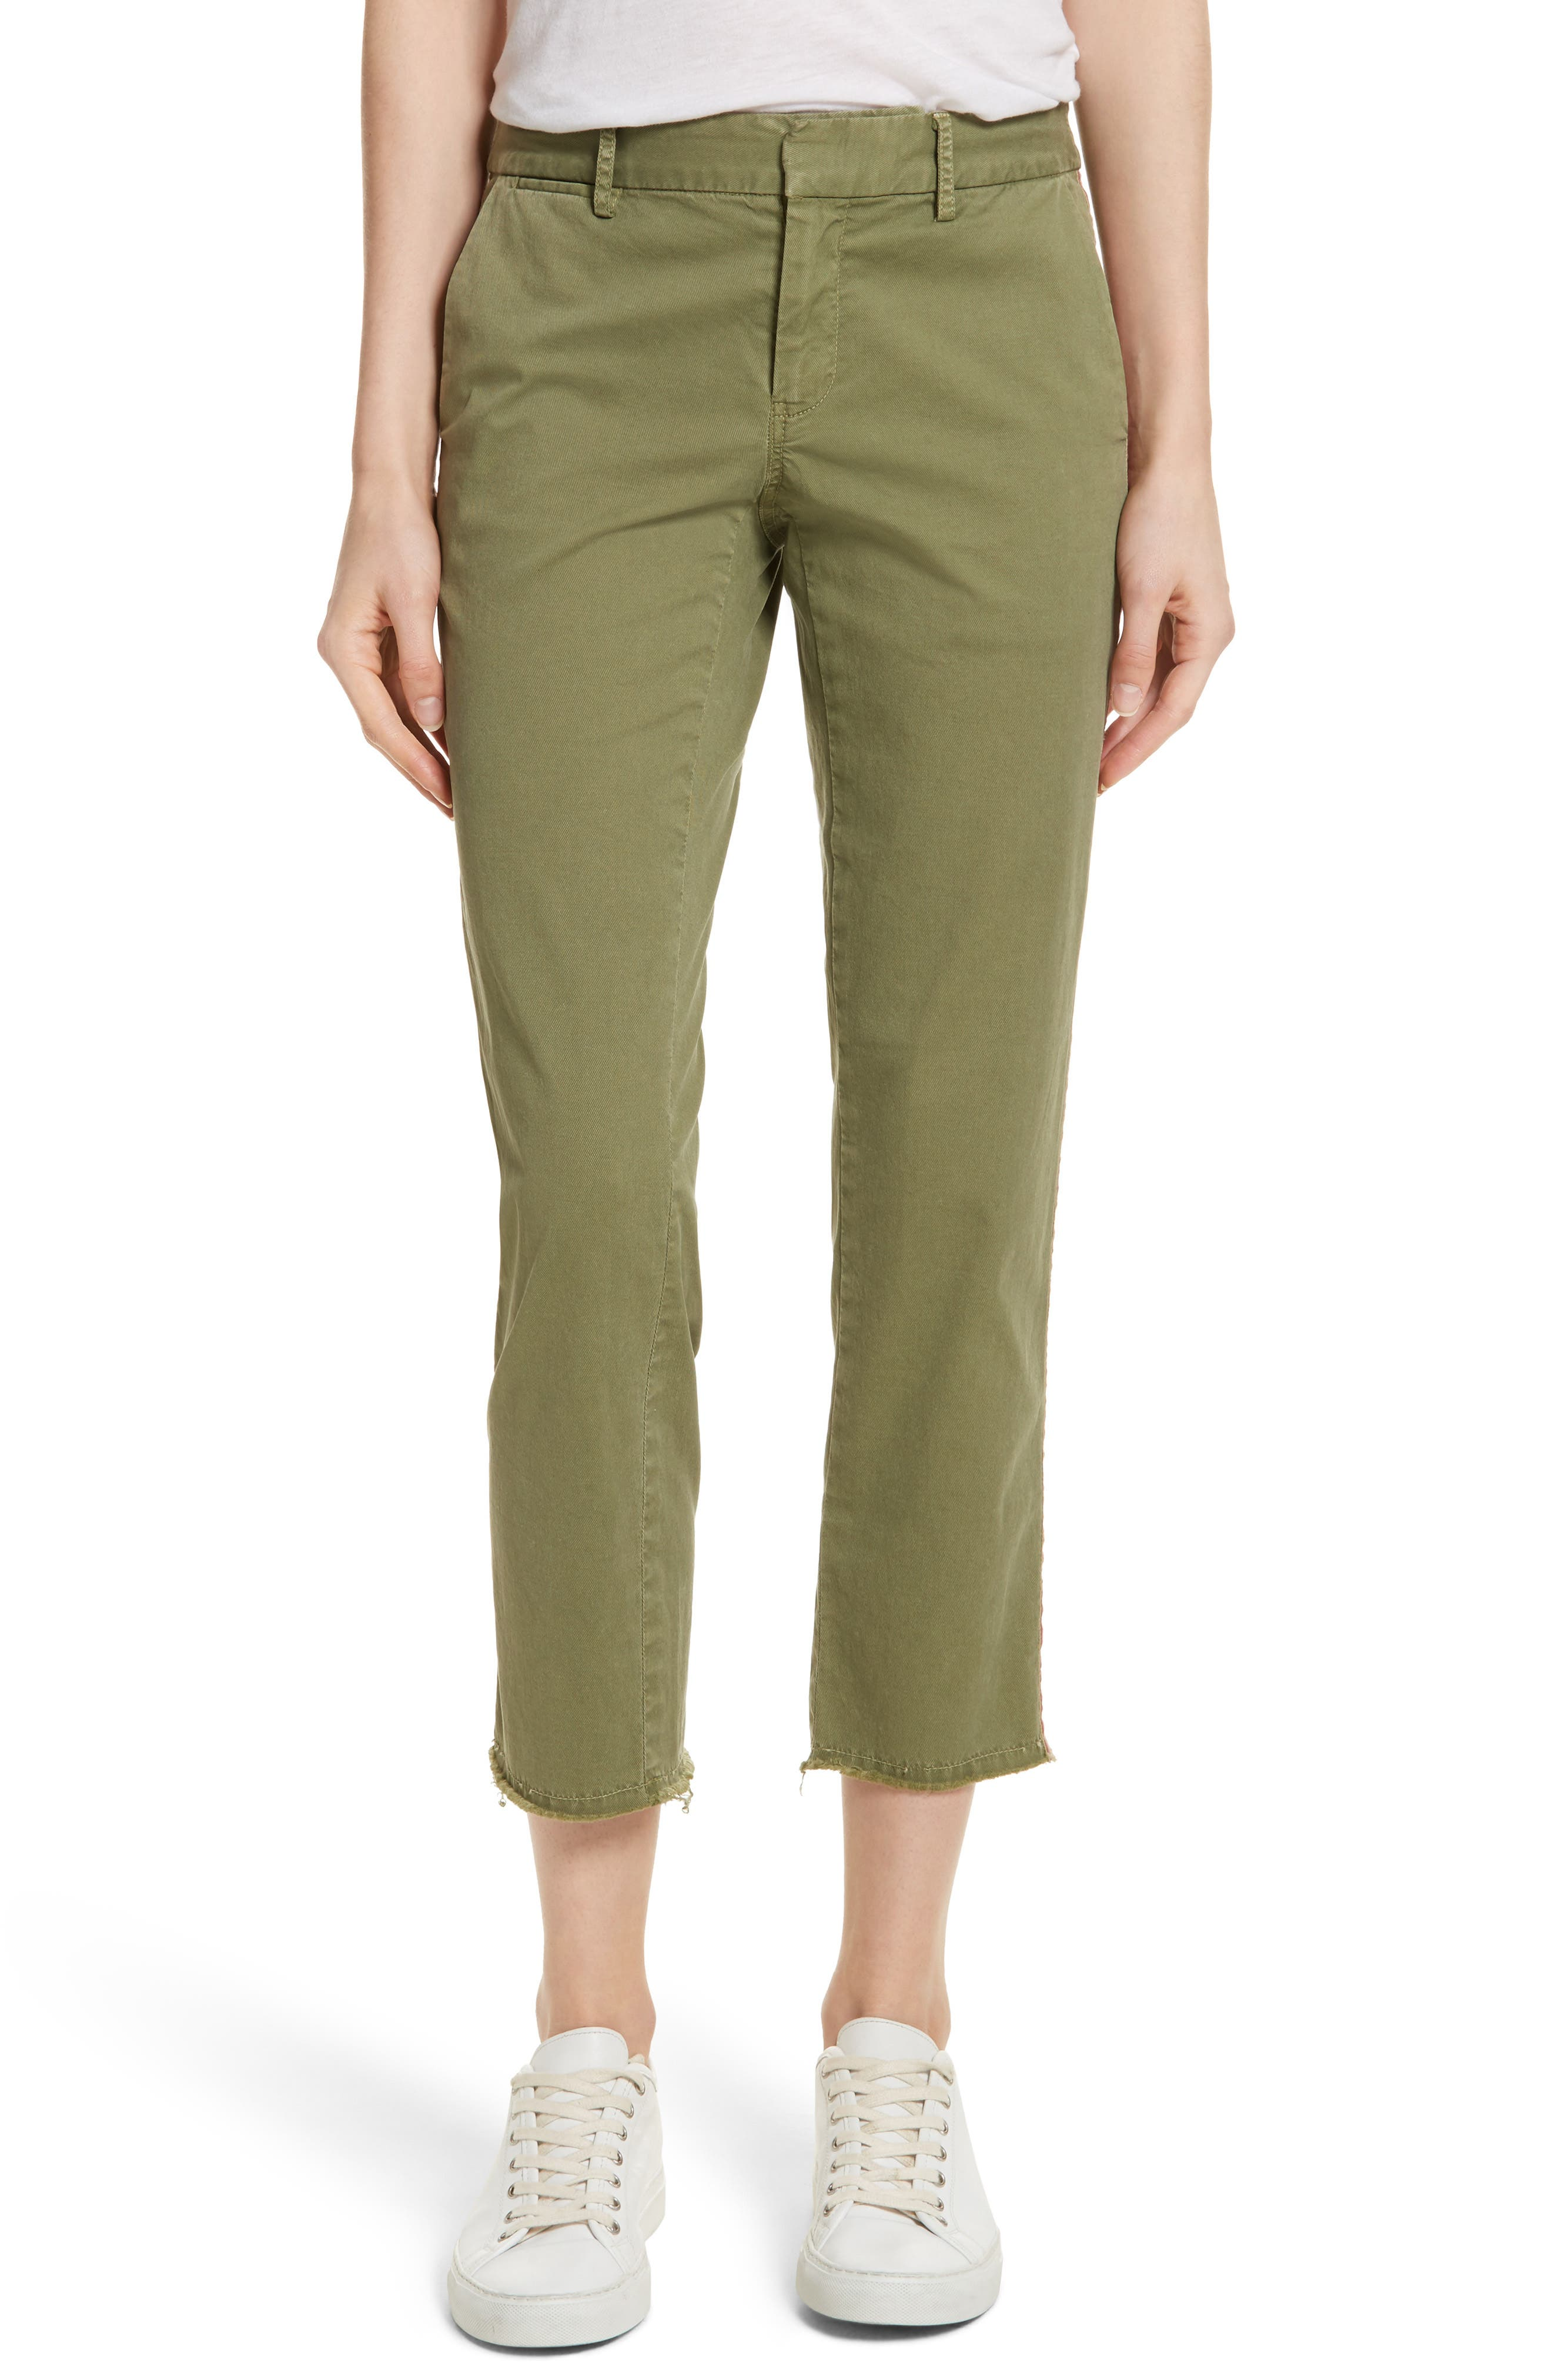 East Hampton Stretch Cotton Twill Crop Pants,                             Main thumbnail 1, color,                             ARMY GREEN